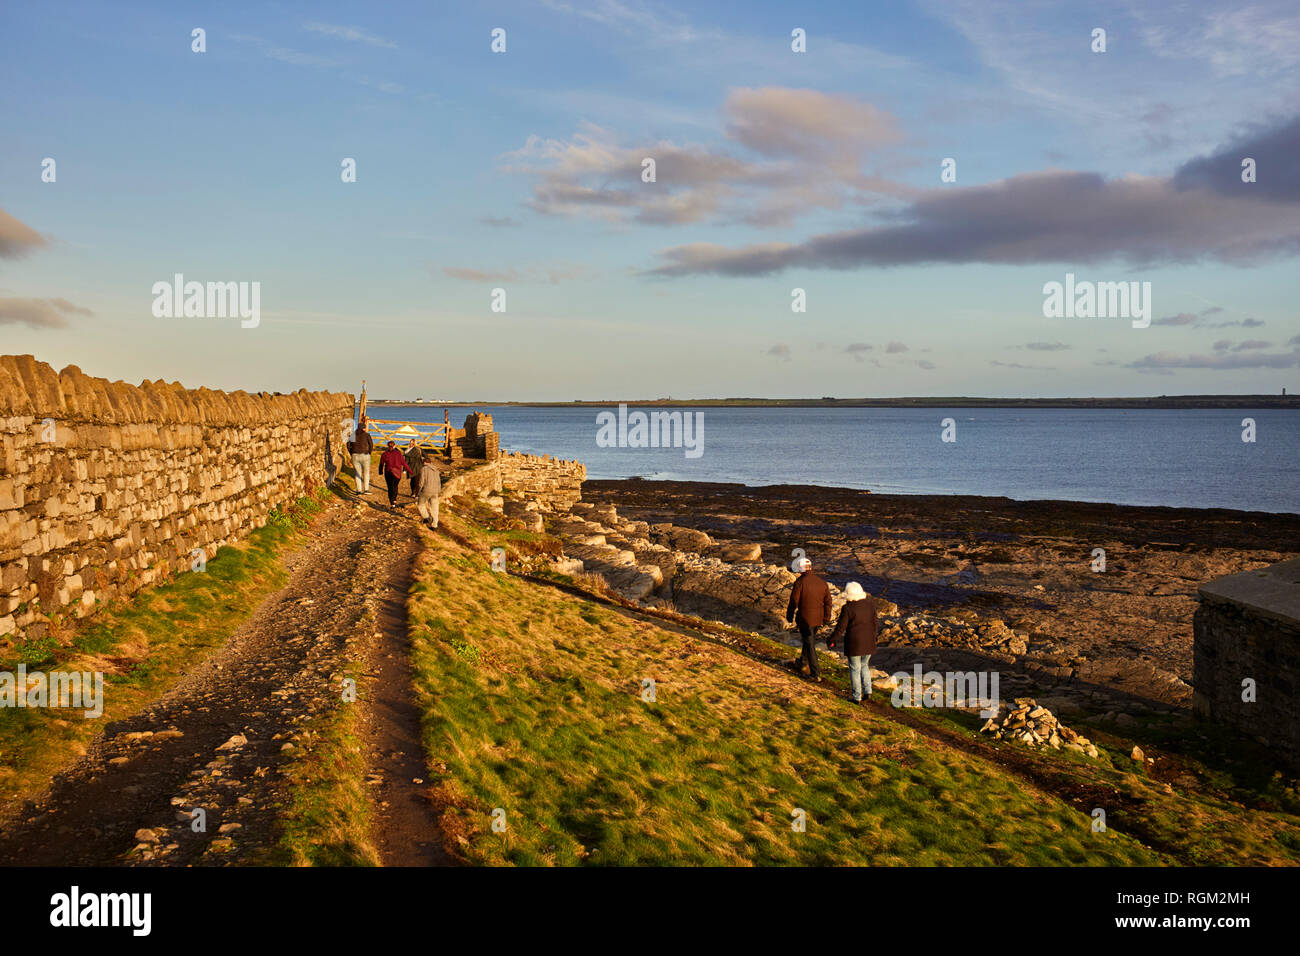 The low winter sun making for a good walk at Scarlett, Castletown, Isle of Man - Stock Image